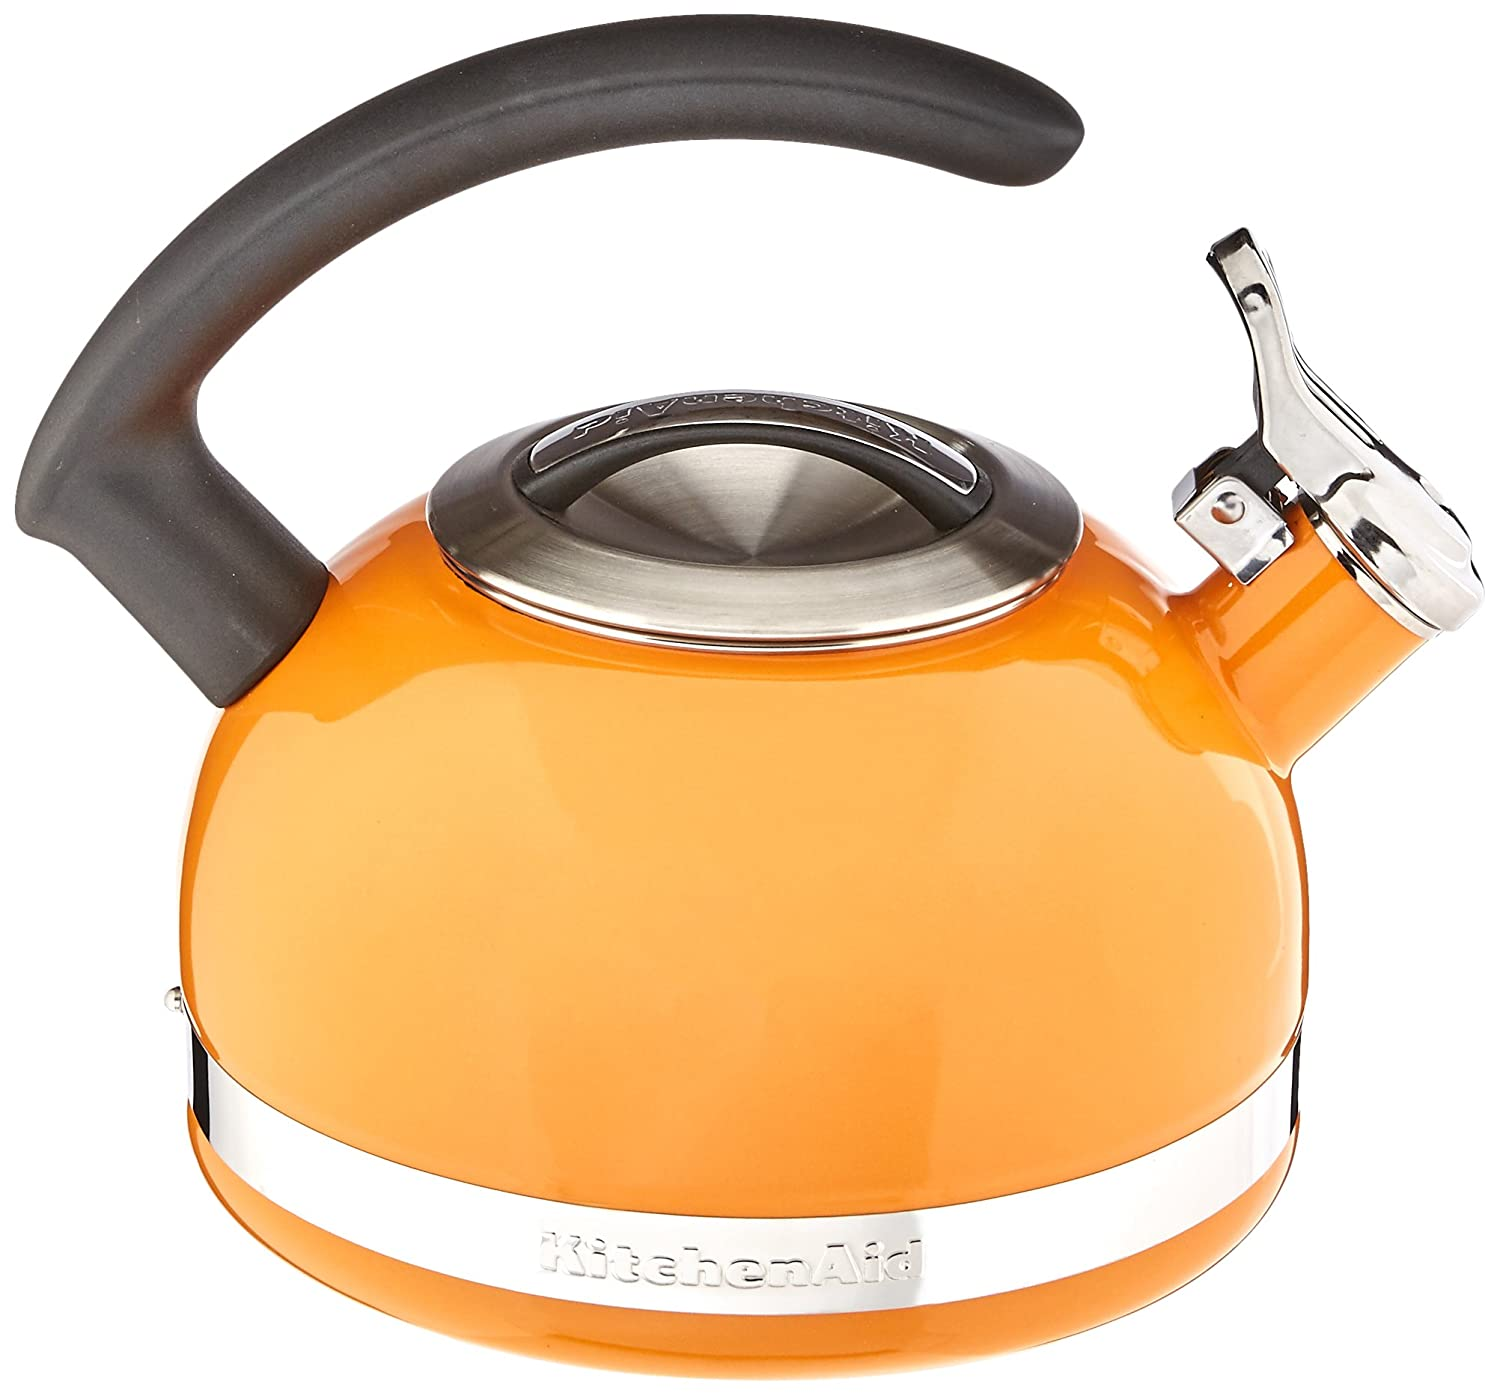 amazoncom kitchenaid ktencbdo quart kettle with c handle  - amazoncom kitchenaid ktencbdo quart kettle with c handle and trimband  mandarin orange kitchen  dining